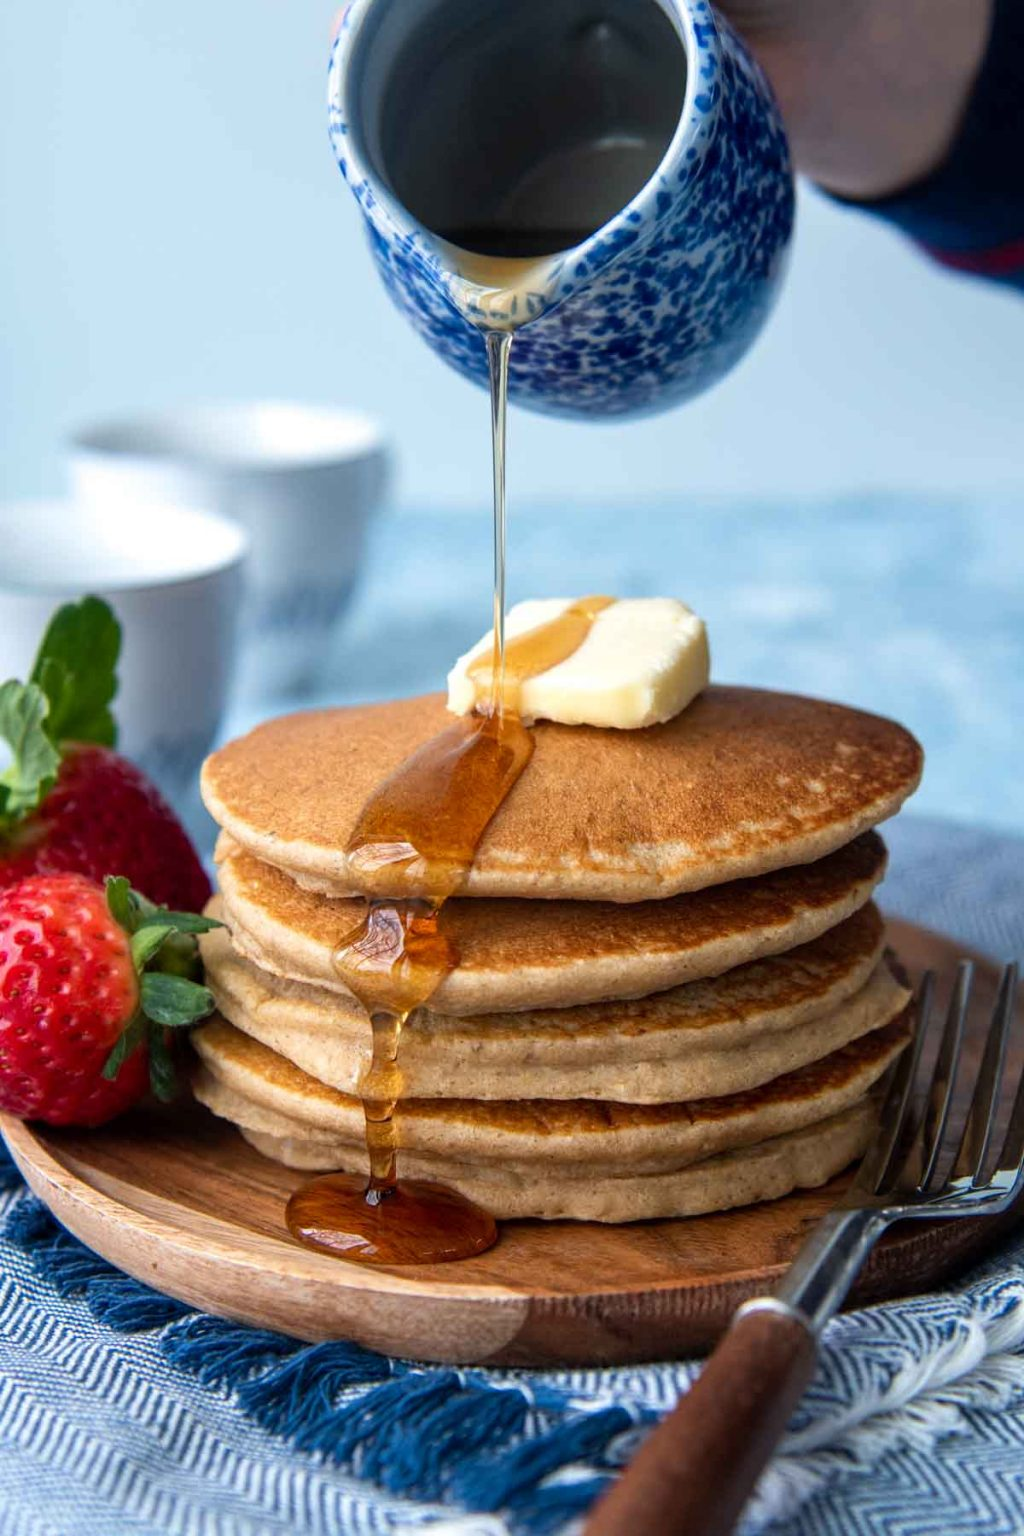 syrup being poured on uncut flourless pancakes stack